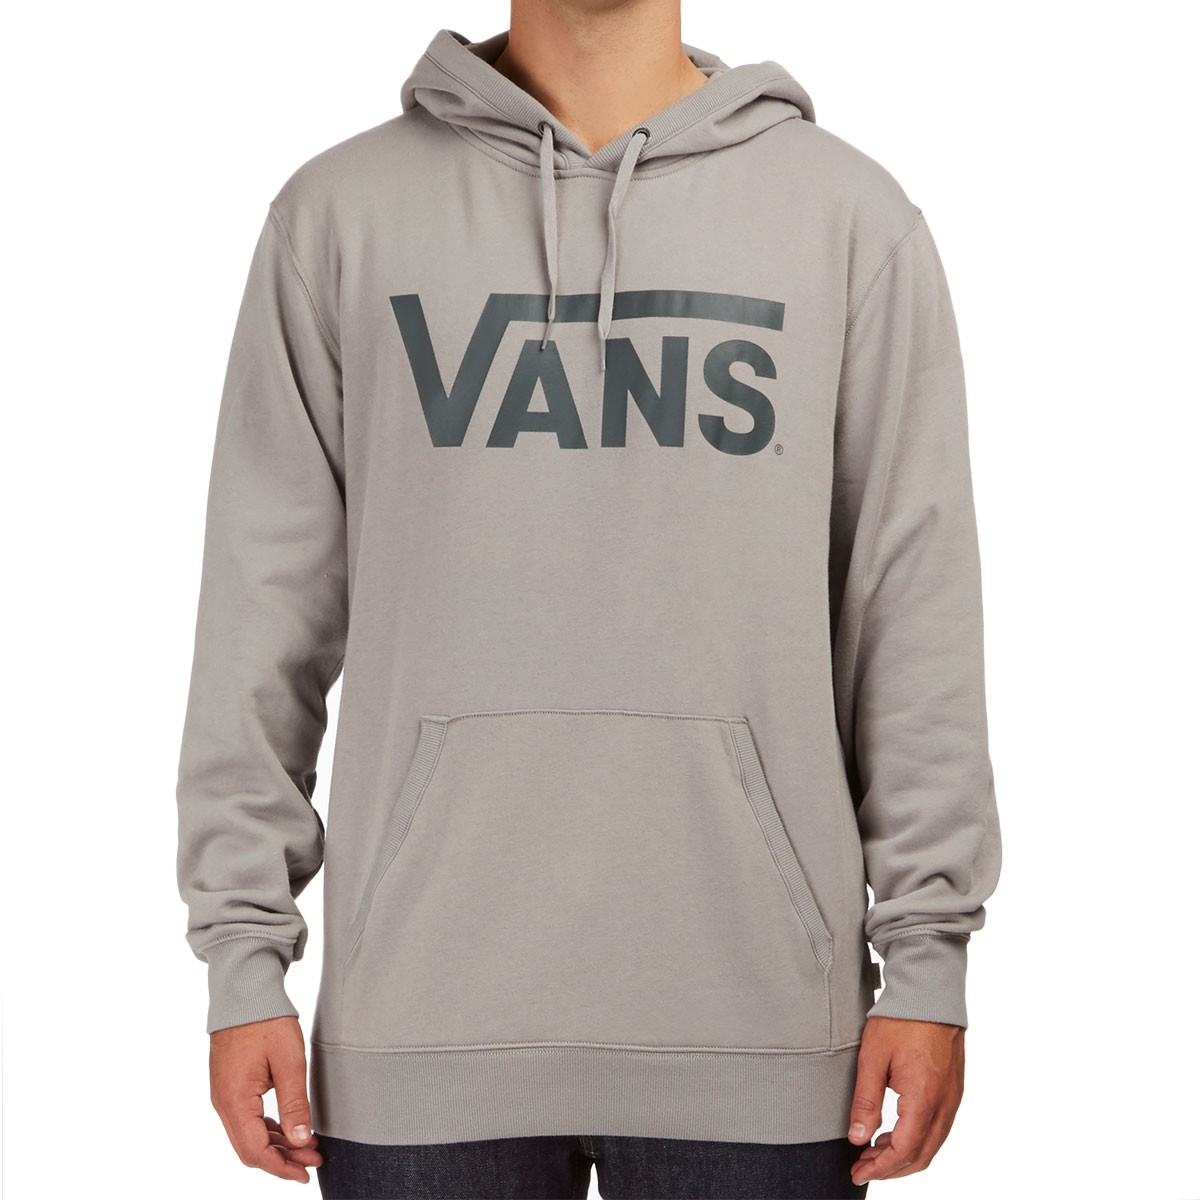 Vans Classic Pullover Hoodie - Frost Grey New Charcoal c3a759ab896